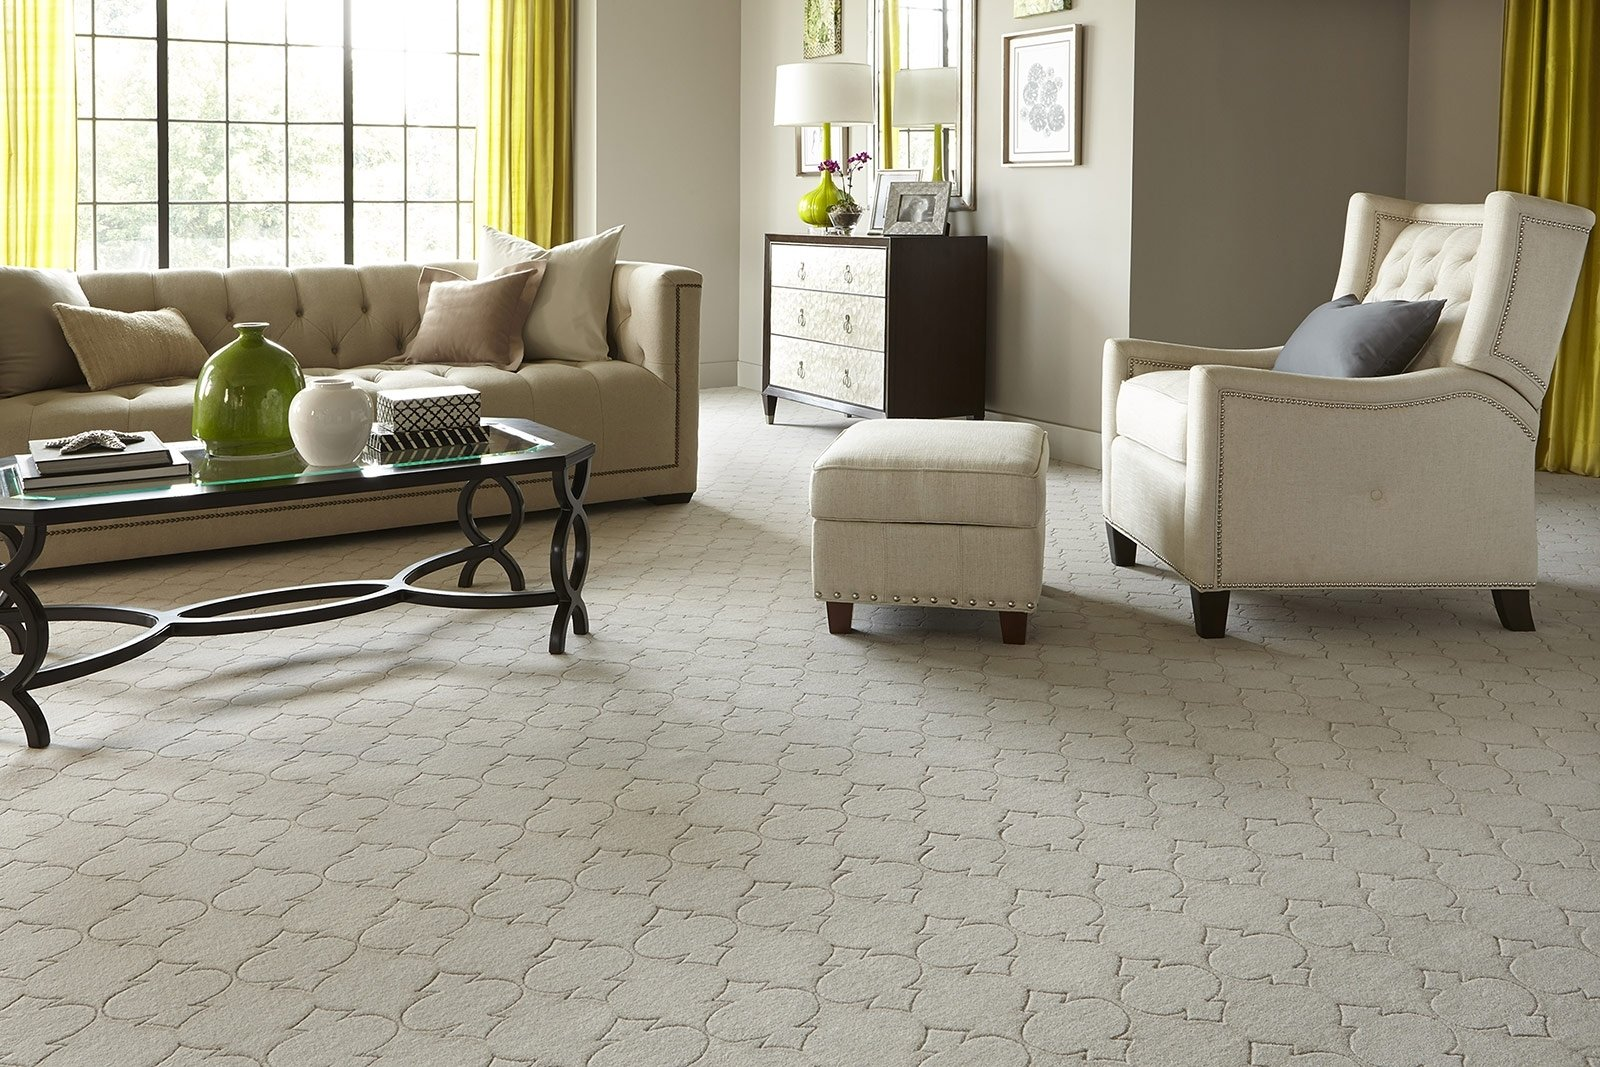 10 Fashionable Wall To Wall Carpet Ideas wall to wall carpet ideas prepossessing 15 rooms that make 2020